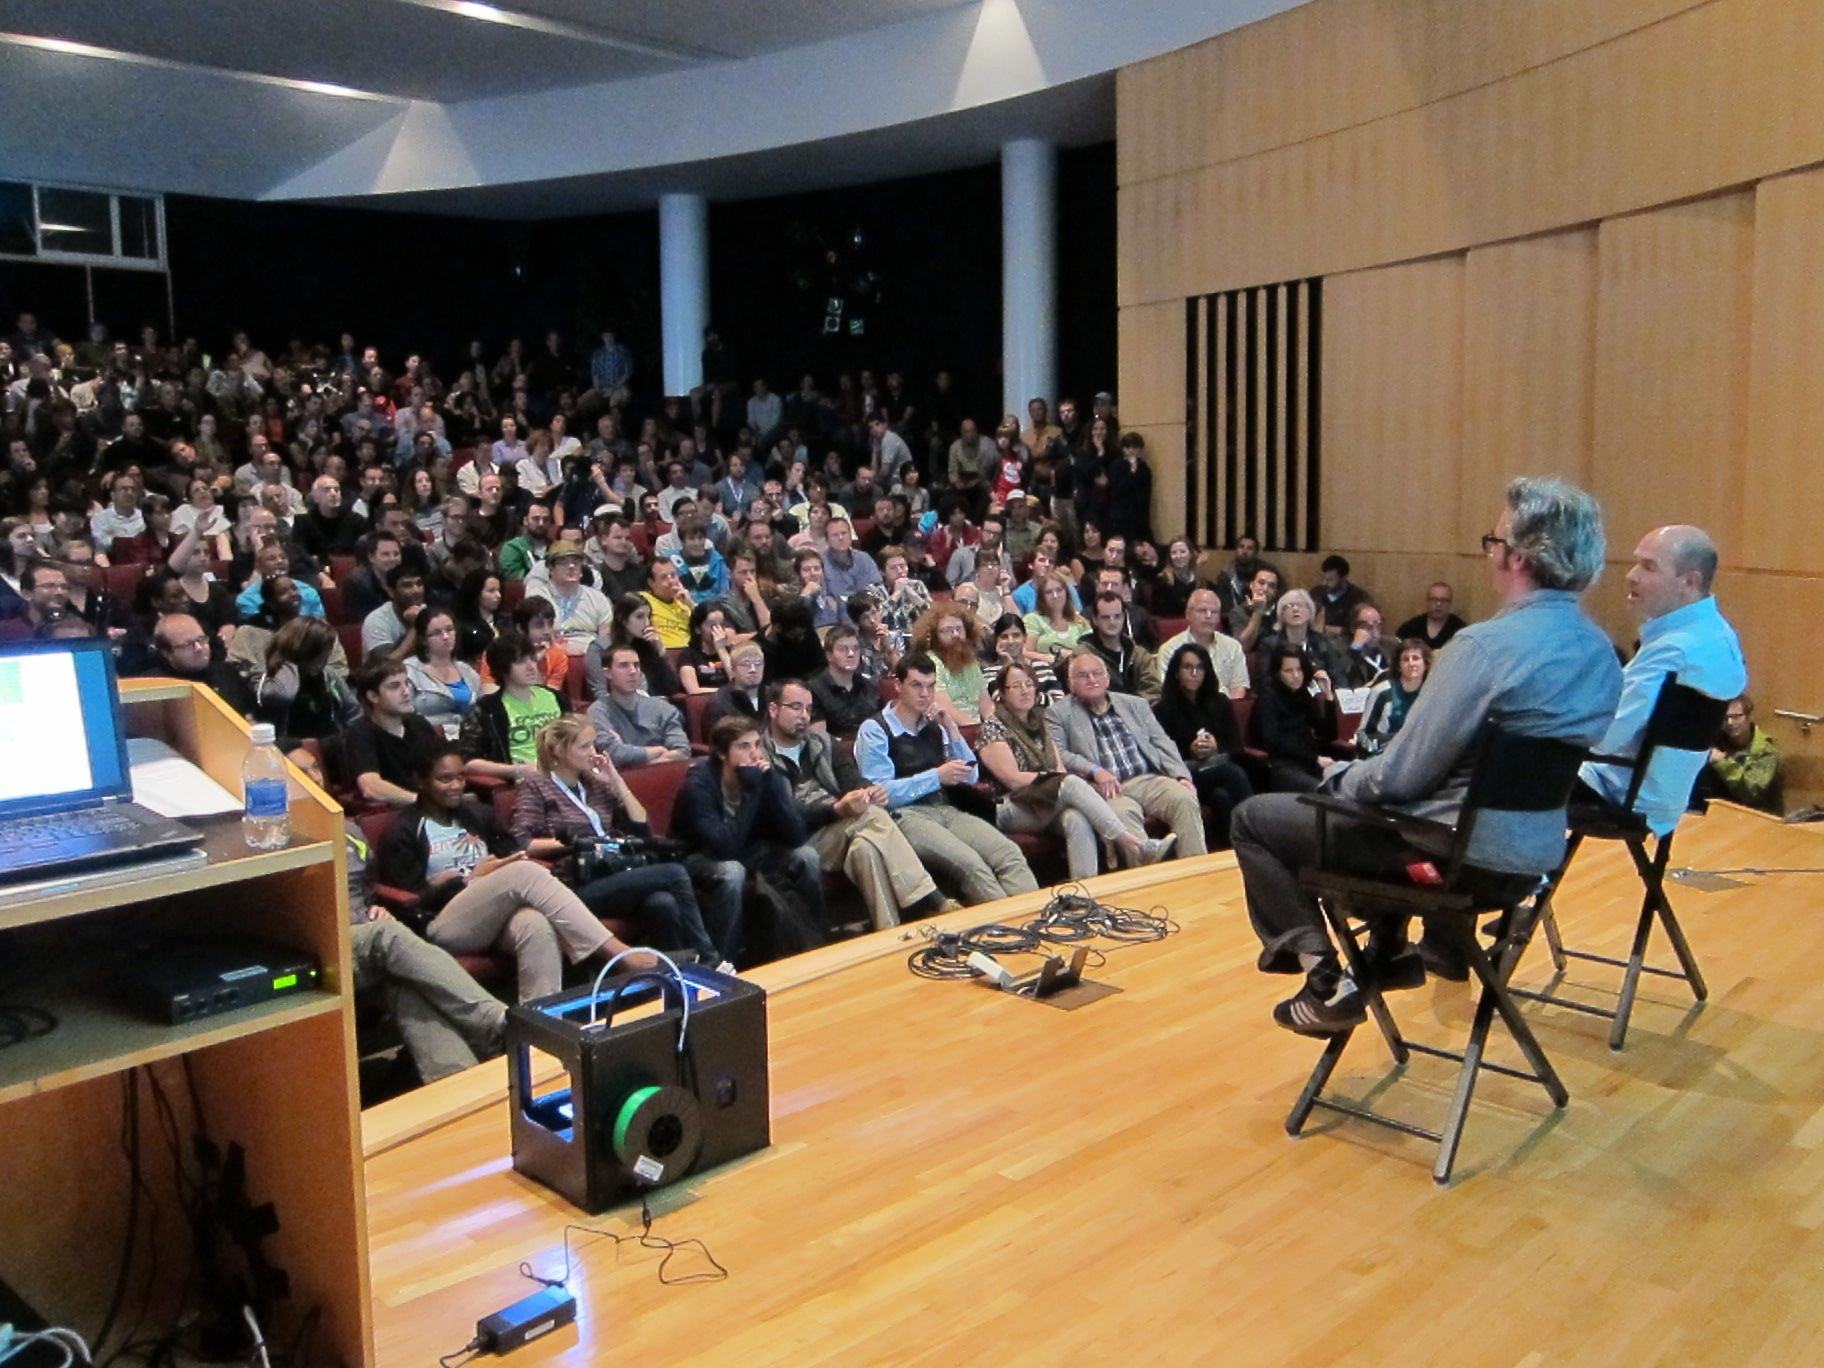 Maker Faire New York:  Moments from the Presentation Stages